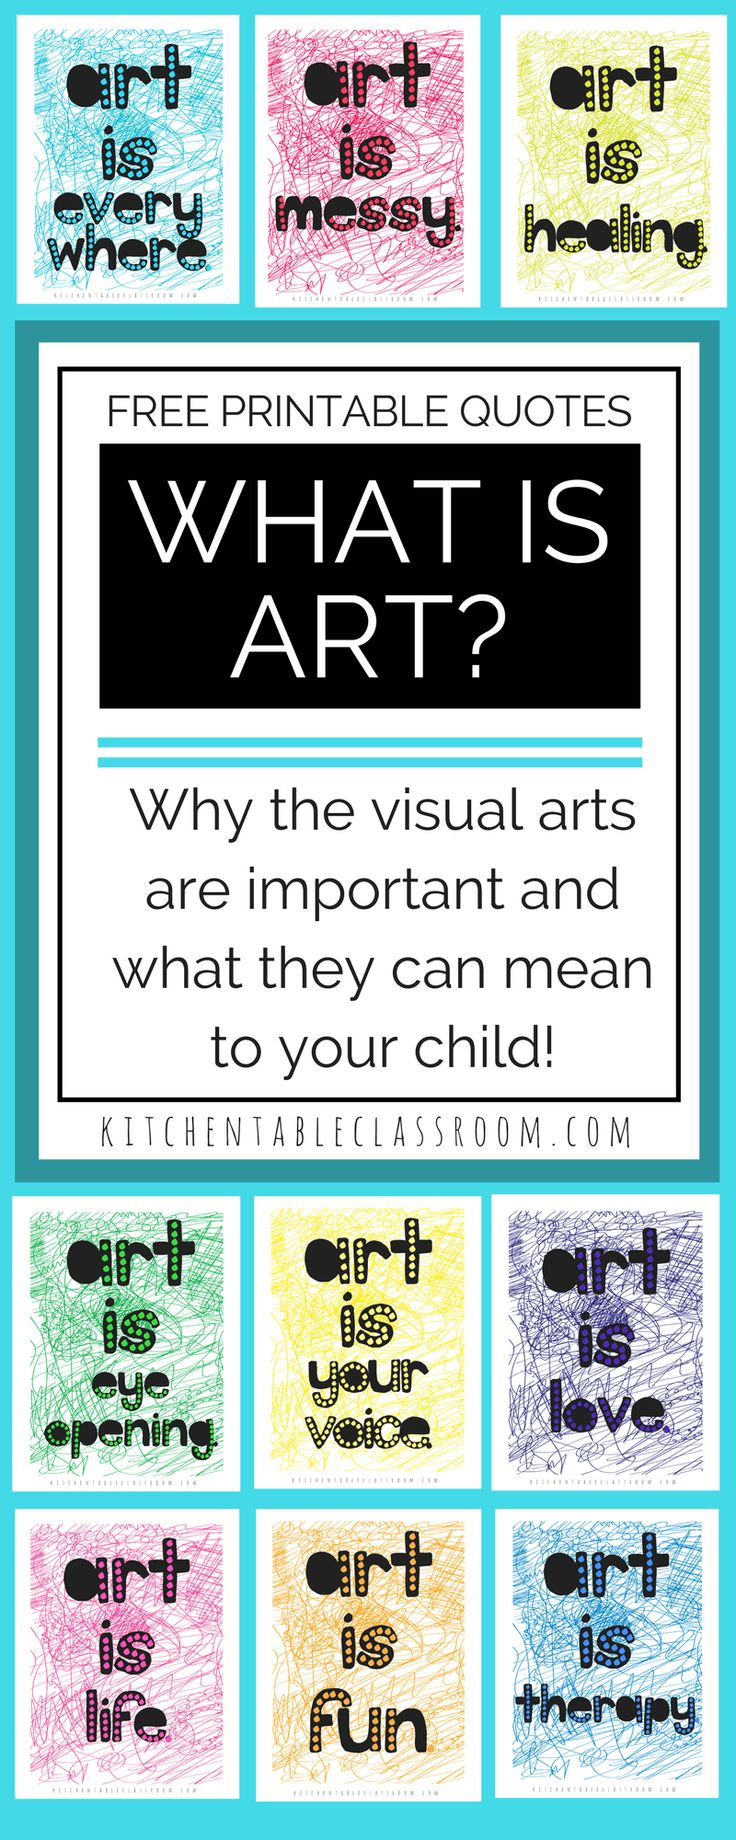 1277 best Items of Interest images on Pinterest | Classroom ideas ...